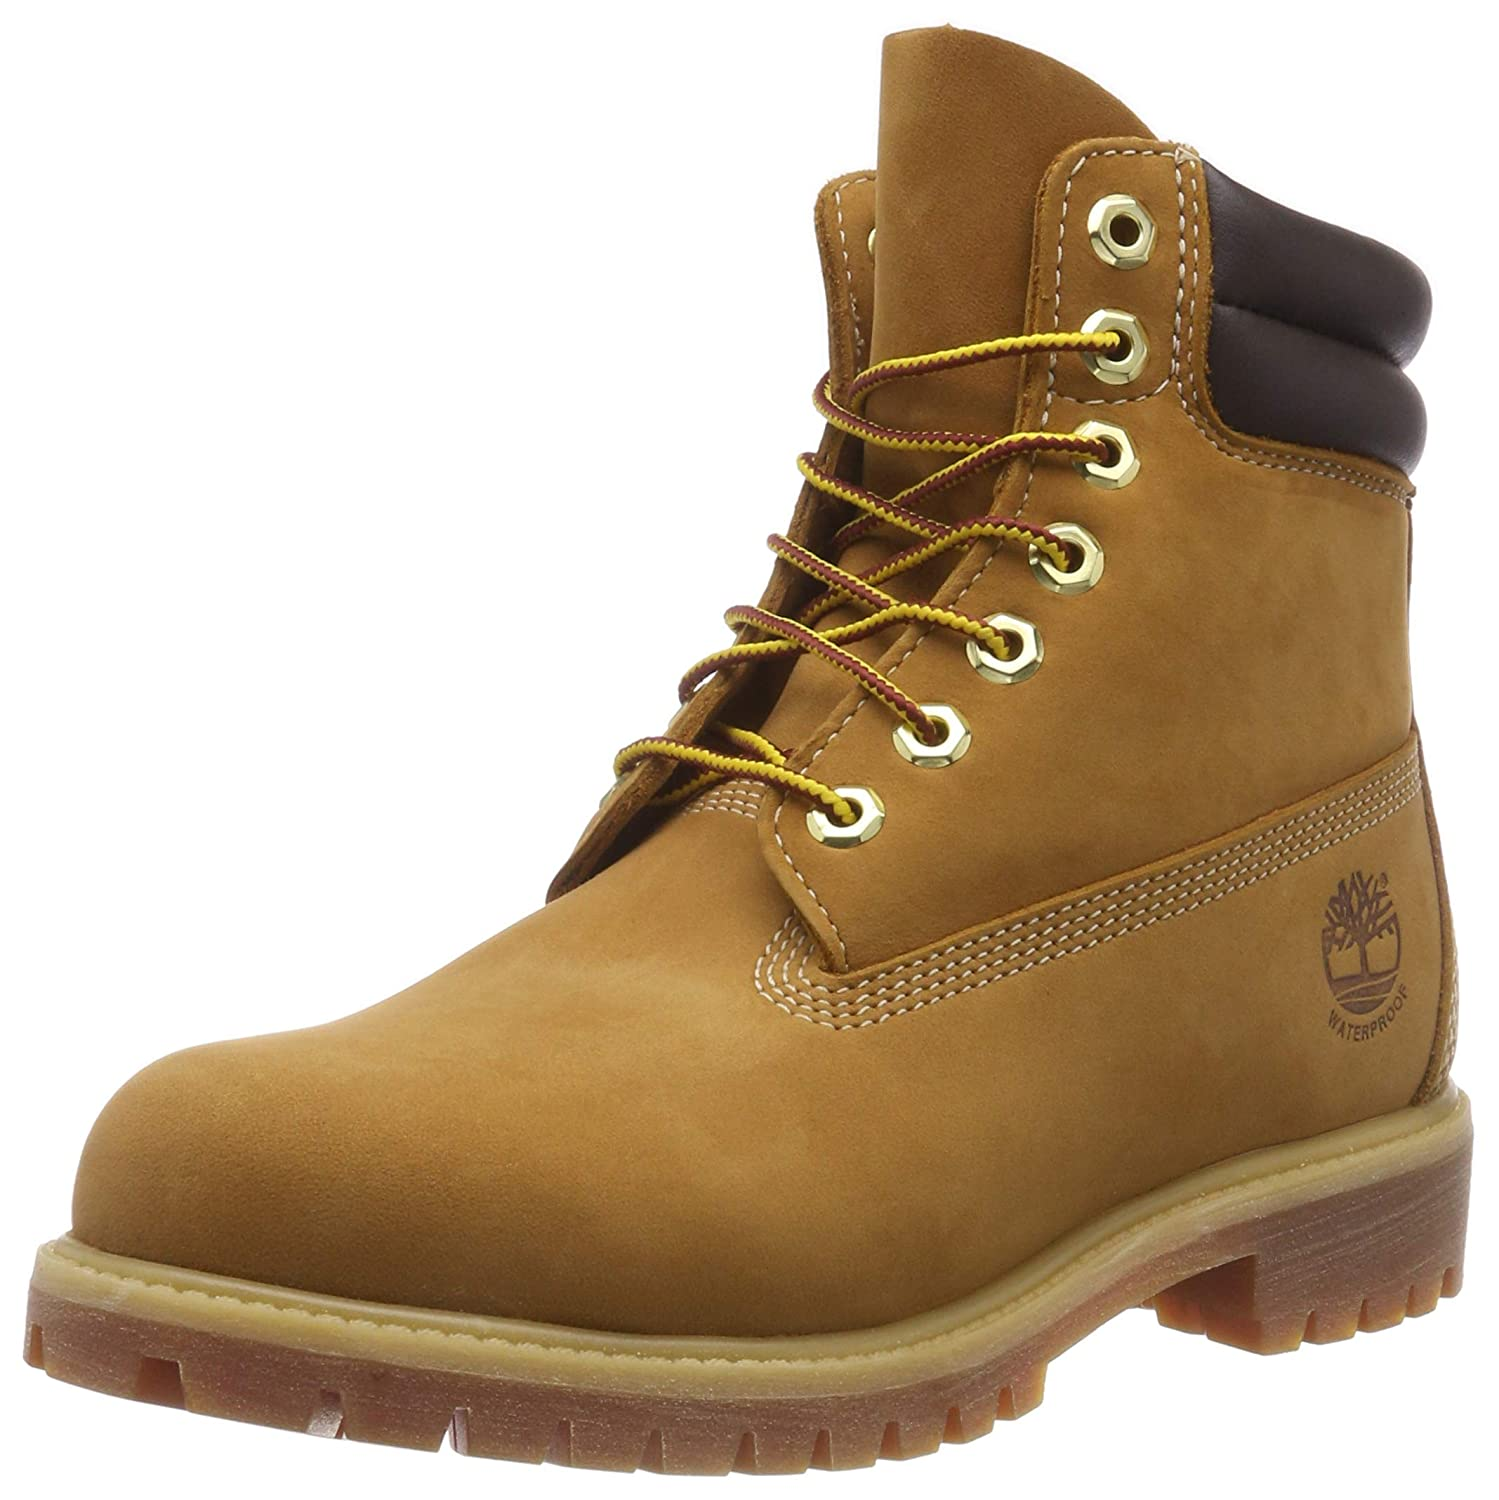 Timberland 6 Inch Double Collar Waterproof, Botas para Hombre